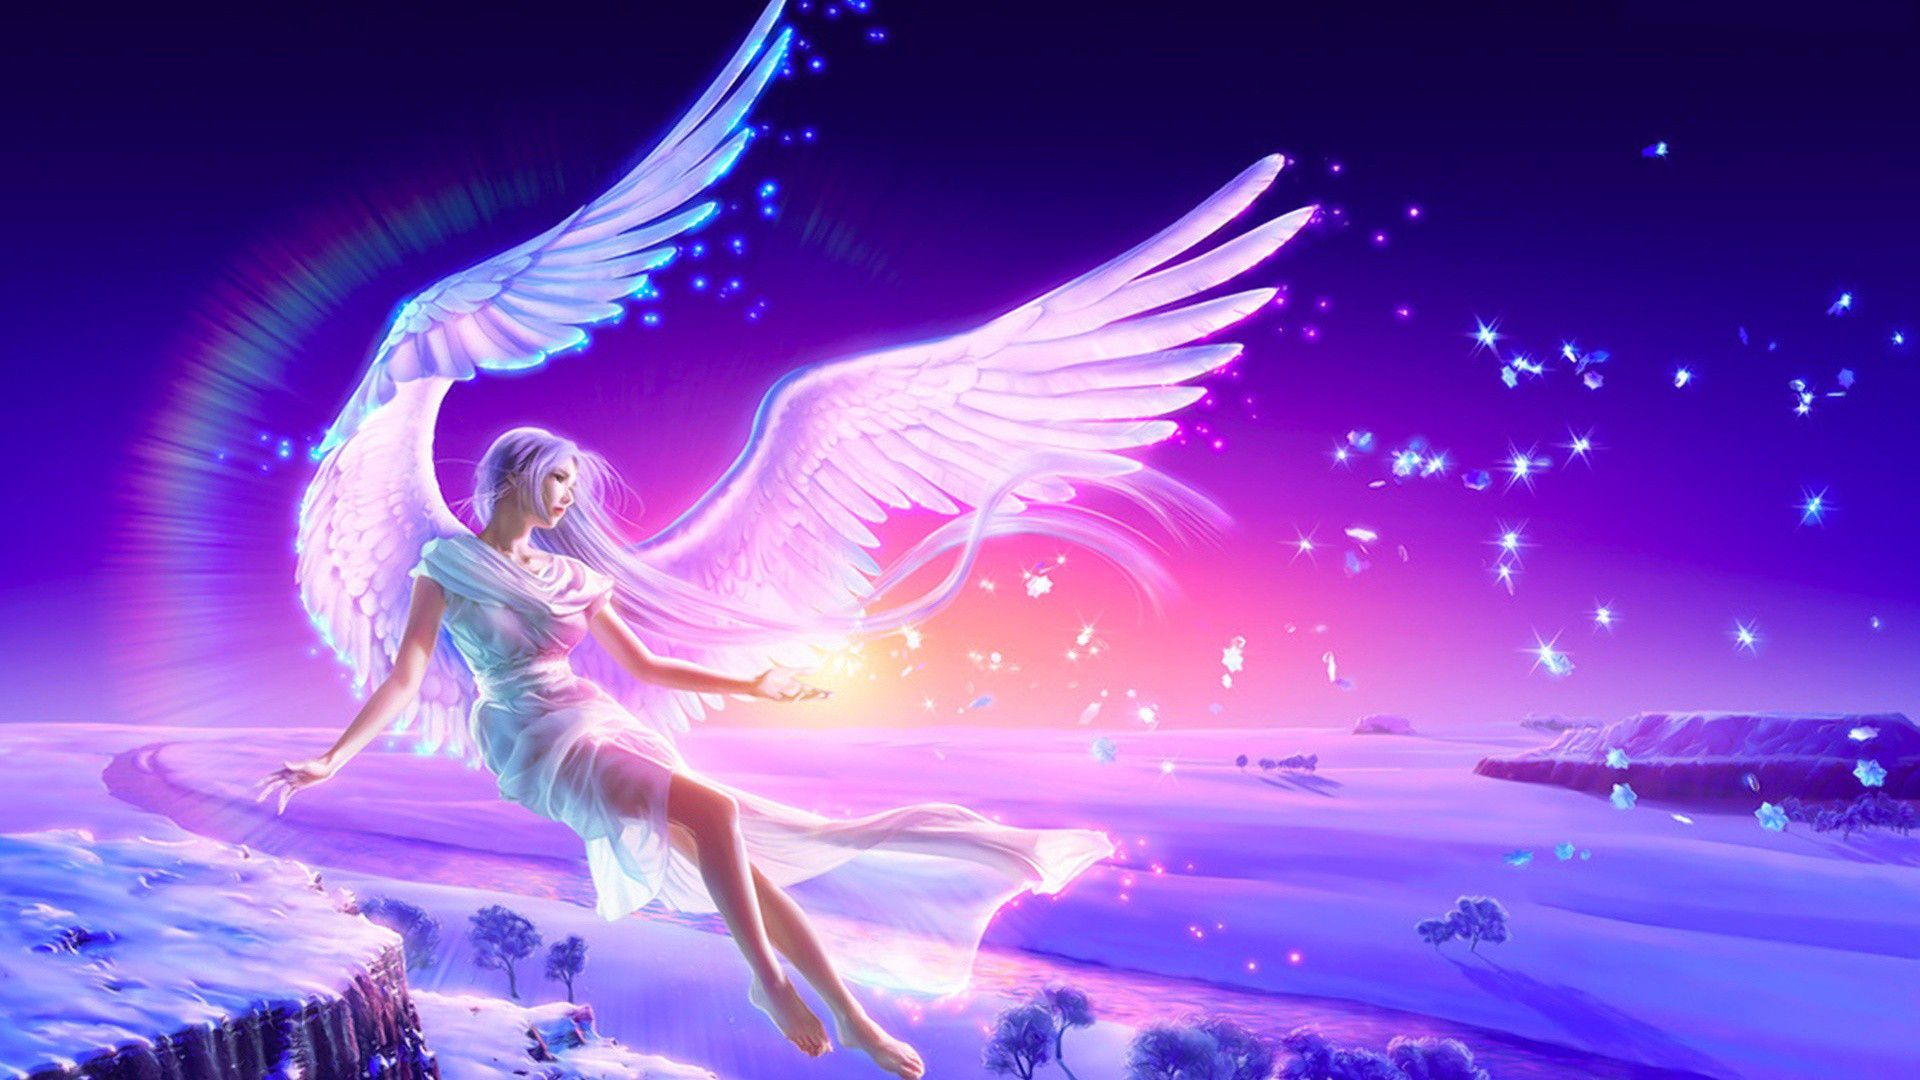 Are You Looking For Fantasy Girls With Wings Hd Wallpapers Download Latest Collection Of Fantasy Girls With Wings Hd Wallpape Makhluk Fantasi Gambar Ilustrasi